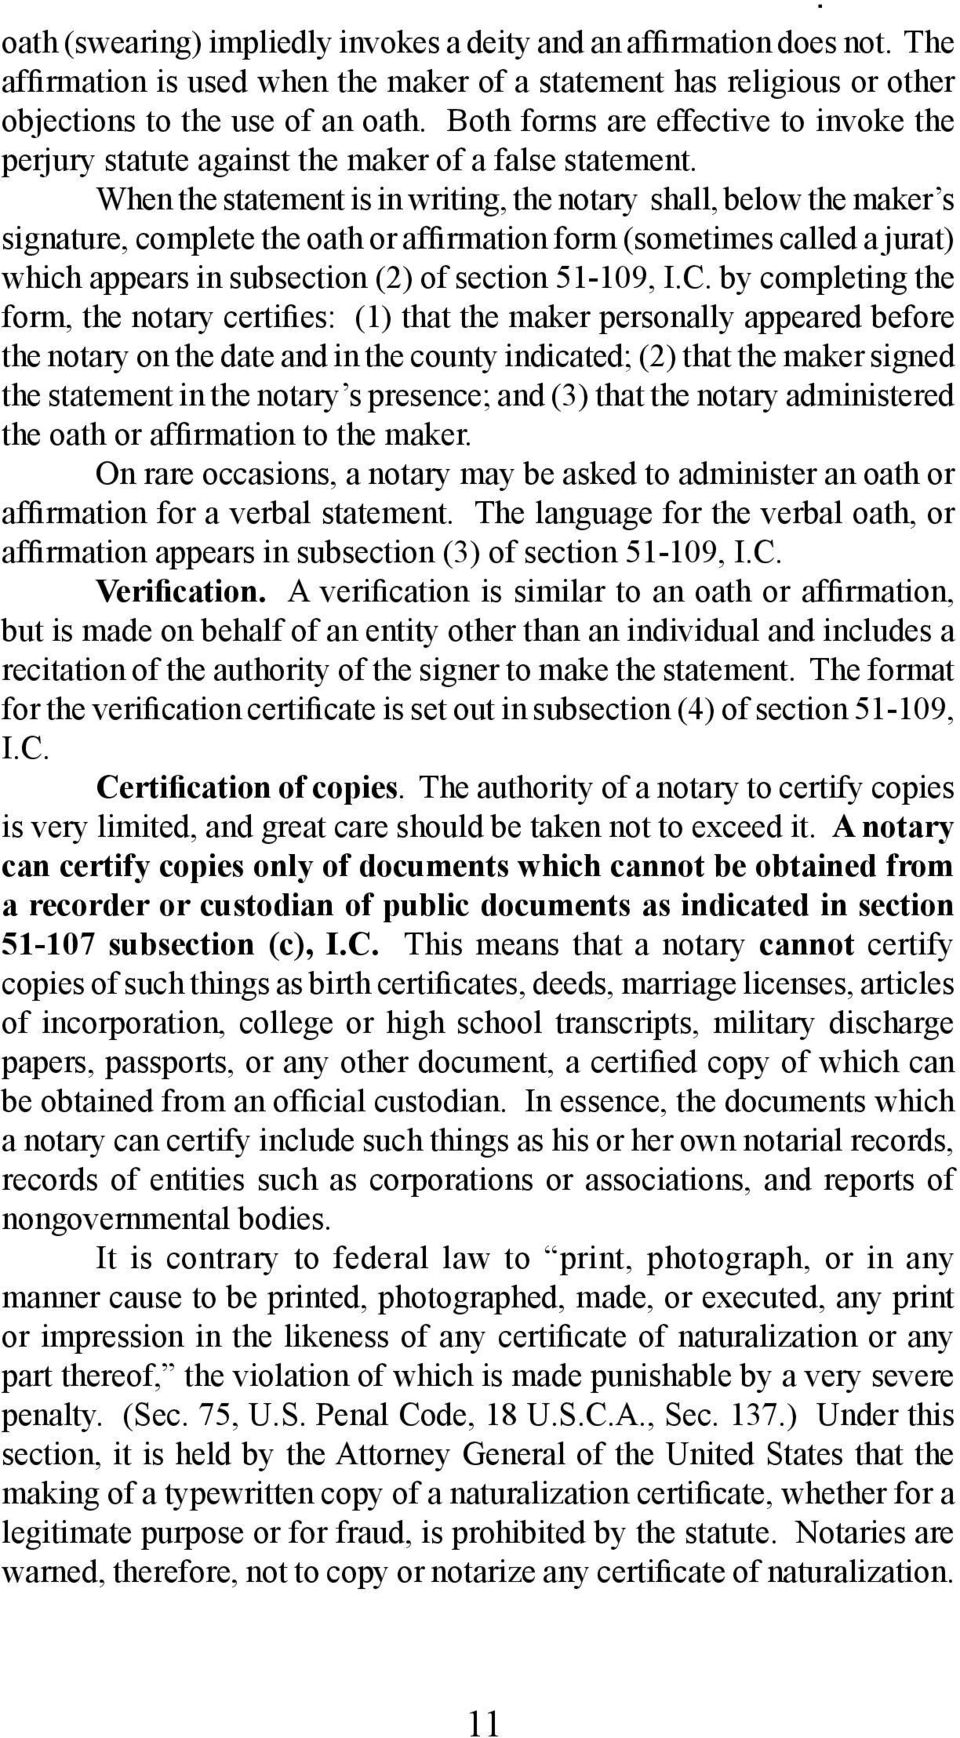 When the statement is in writing, the notary shall, below the maker s signature, complete the oath or affirmation form (sometimes called a jurat) which appears in subsection (2) of section 51 109, I.